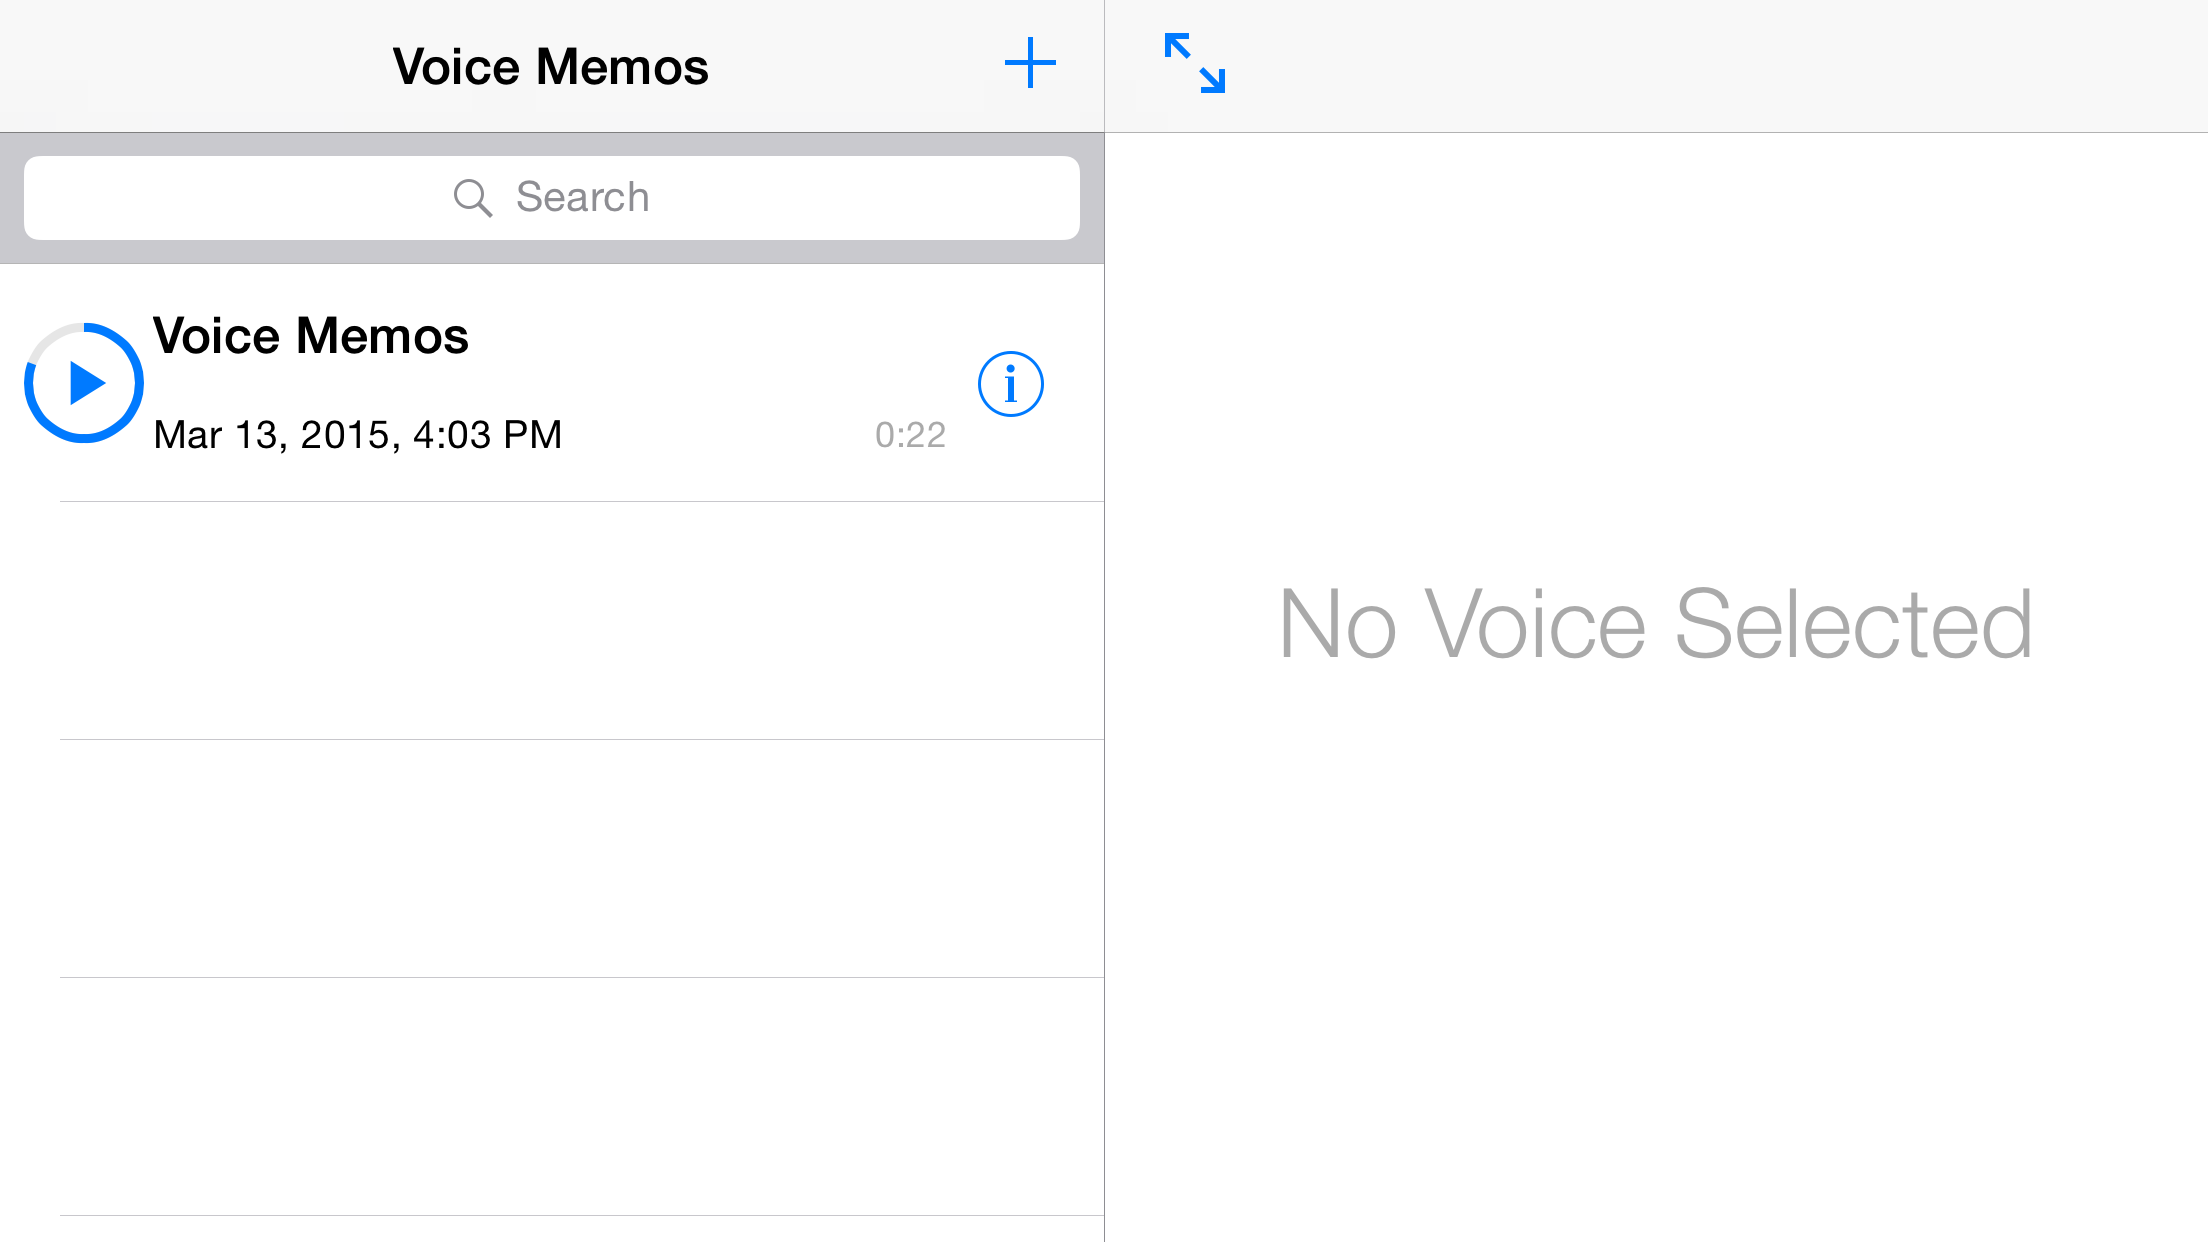 GitHub - MoZhouqi/VoiceMemos: Voice Memos is an audio recorder App